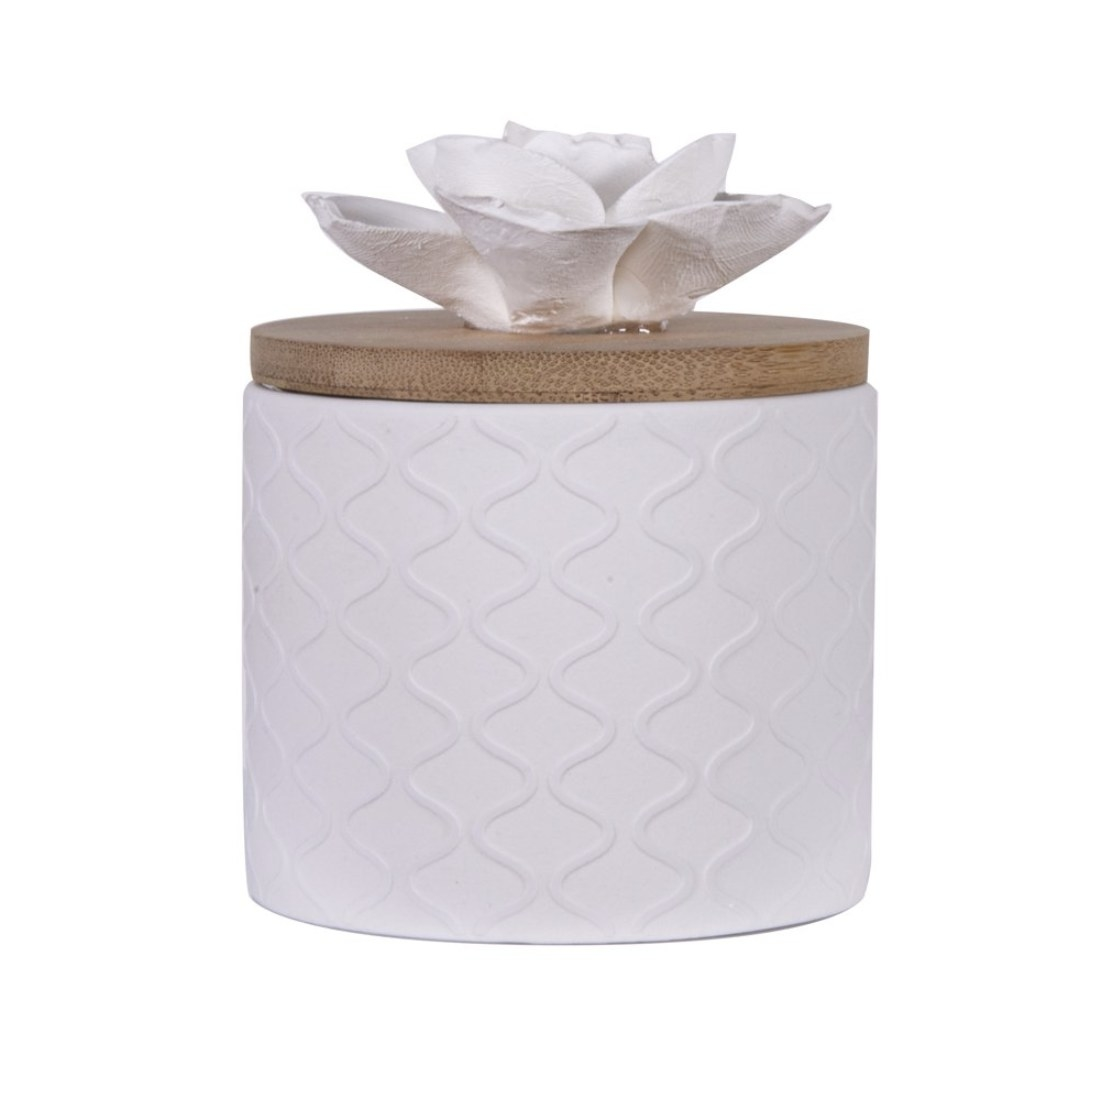 A white ceramic diffuser with a ceramic flower on top